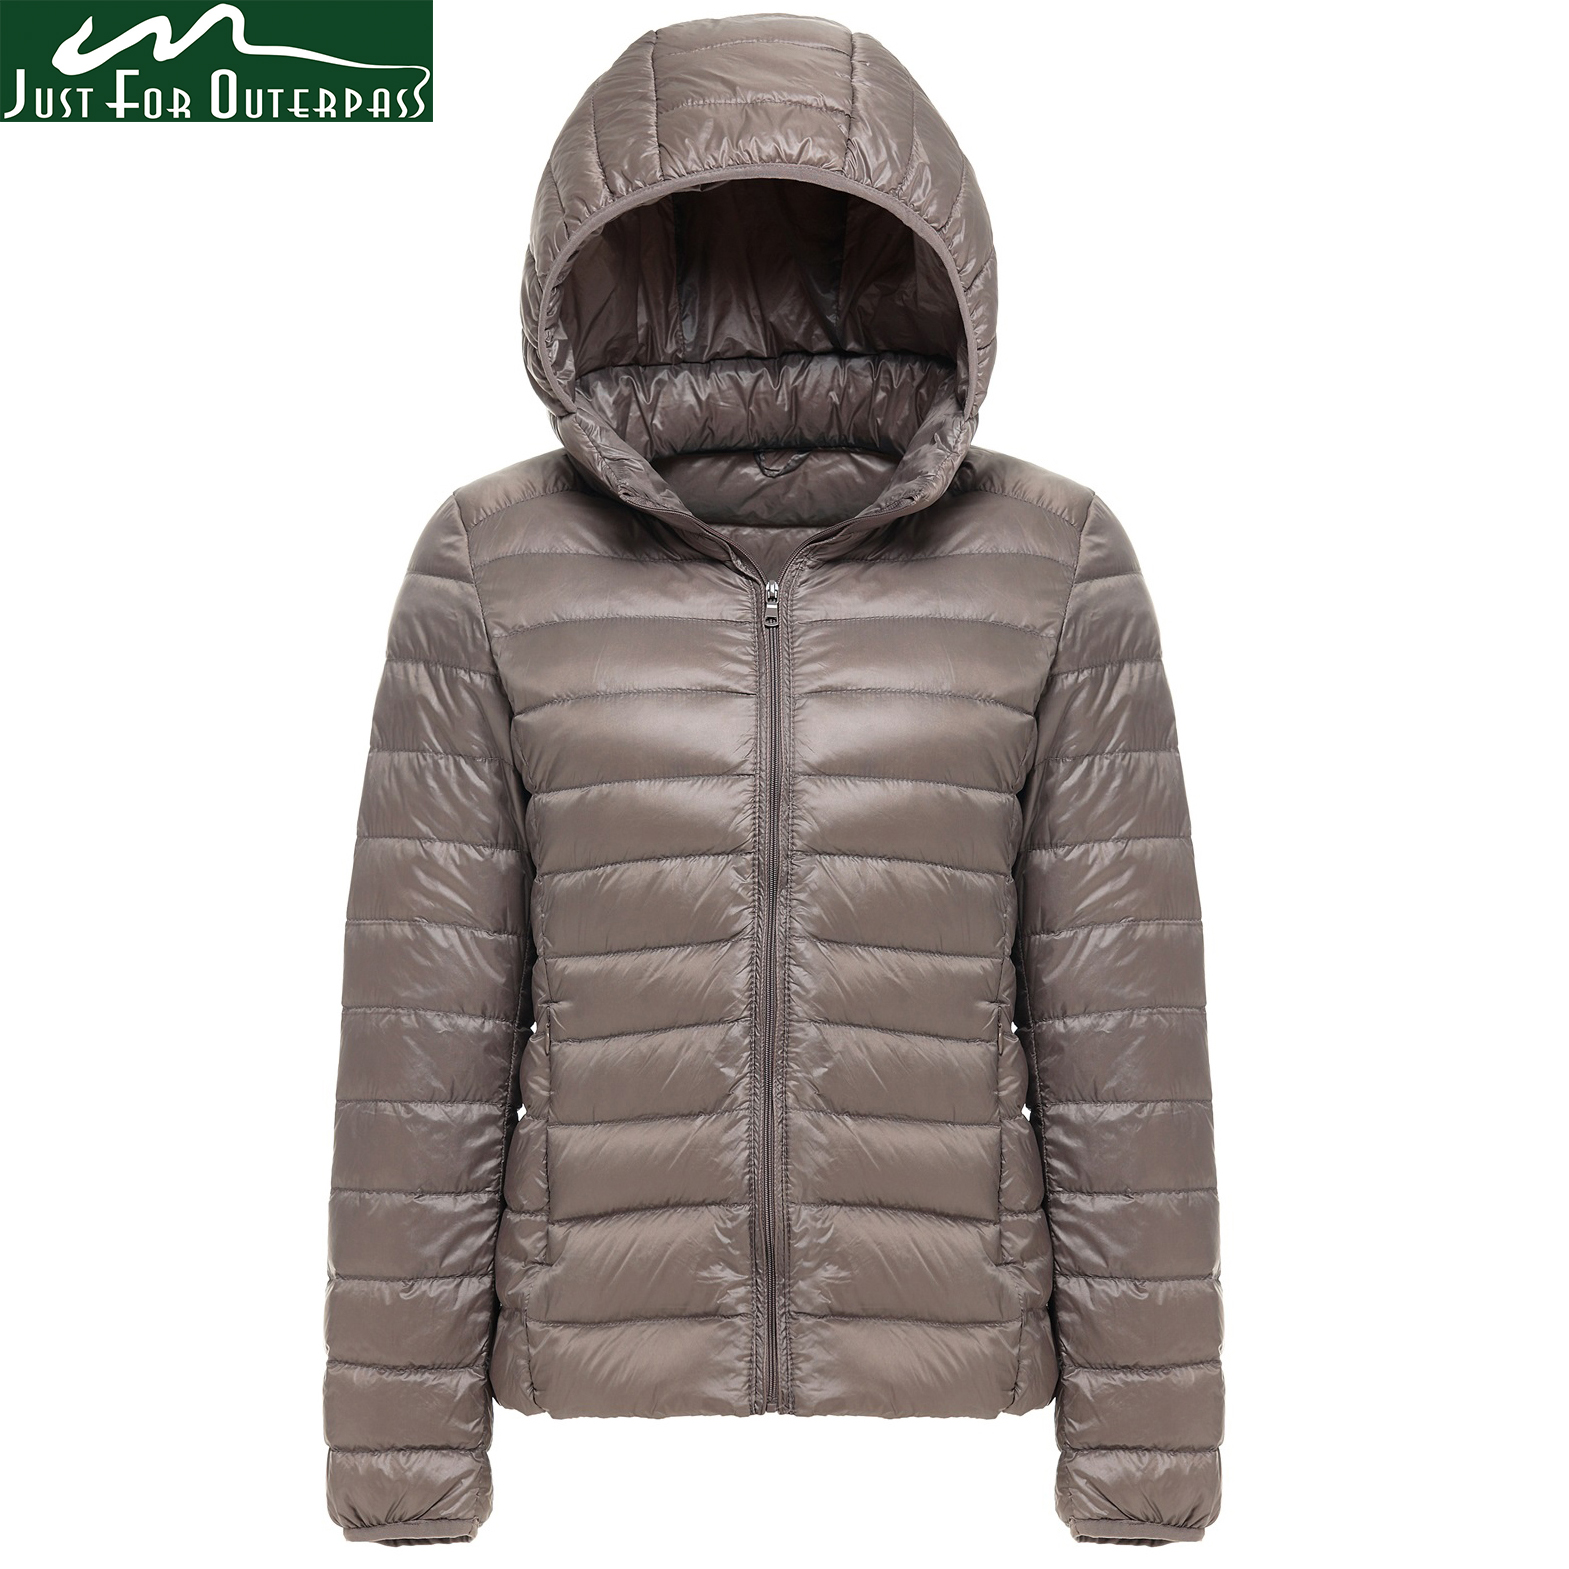 ae6aaa1de62 2019 New Brand 90% White Duck Down Jacket Women Autumn Winter Warm Coat  Lady Ultralight